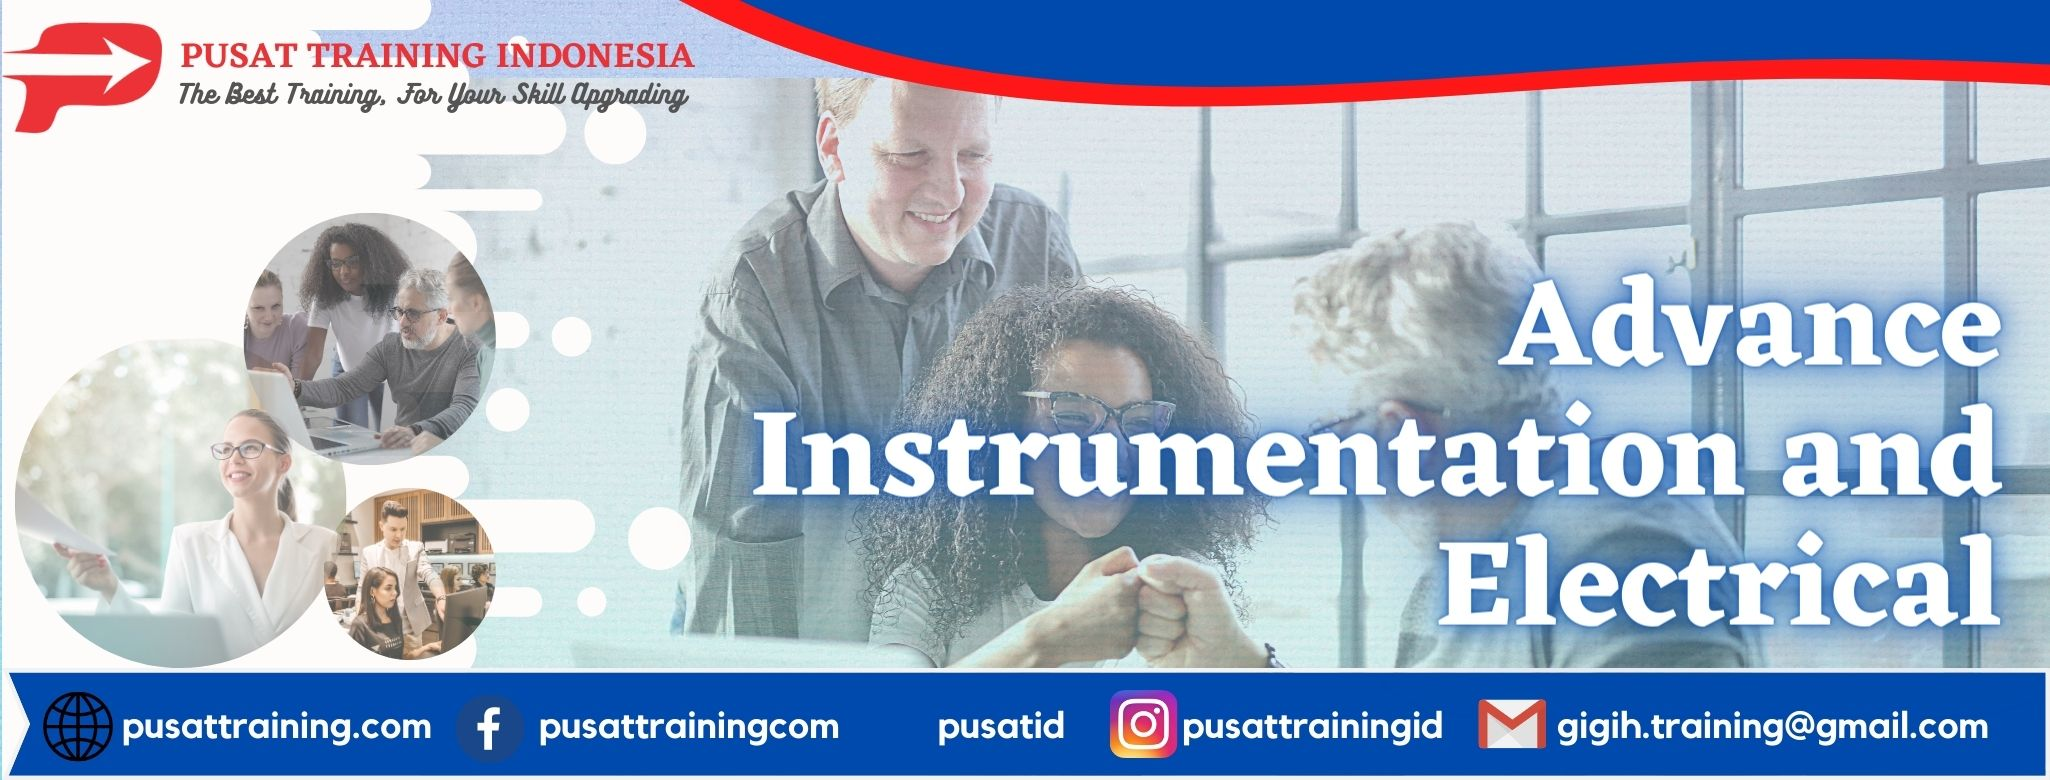 Advance-Instrumentation-and-Electrical